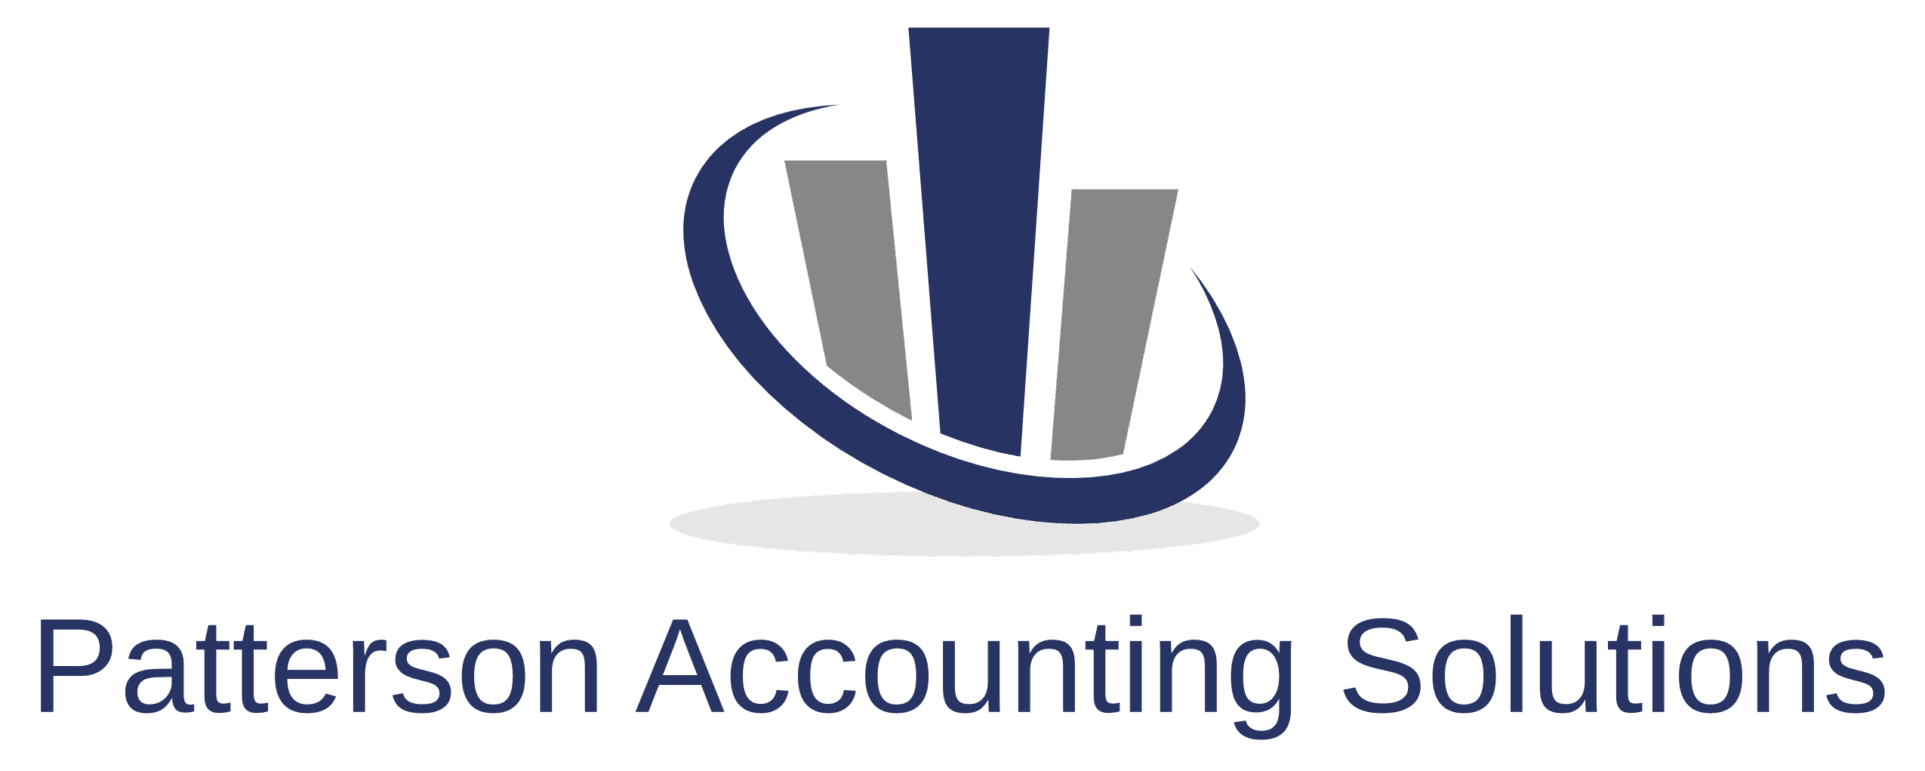 Patterson Accounting Solutions LLC